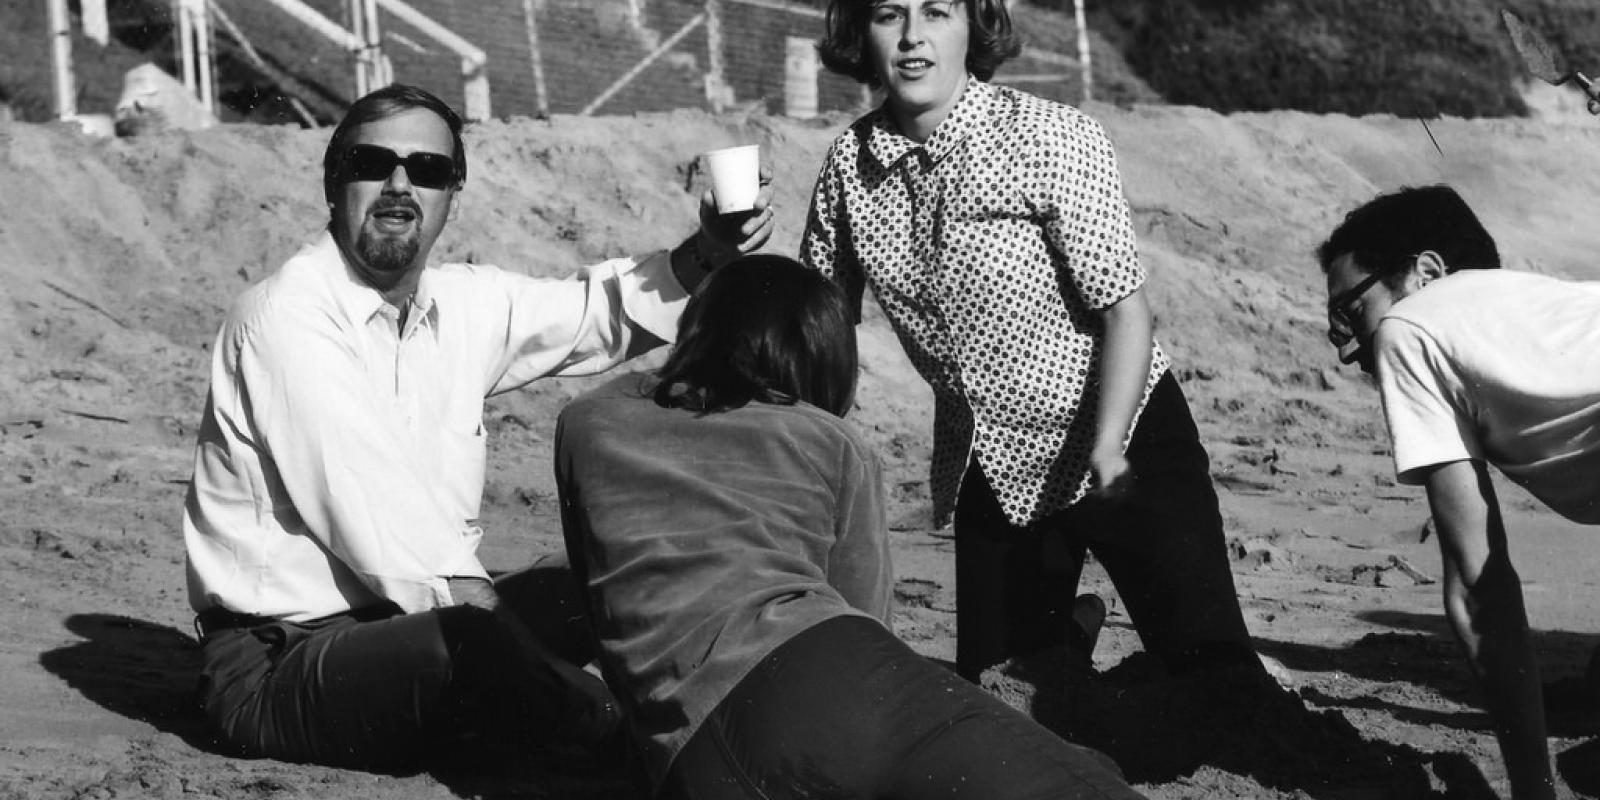 CPPLA in the late 1960 on a studio field trip to the beach for some sand casting